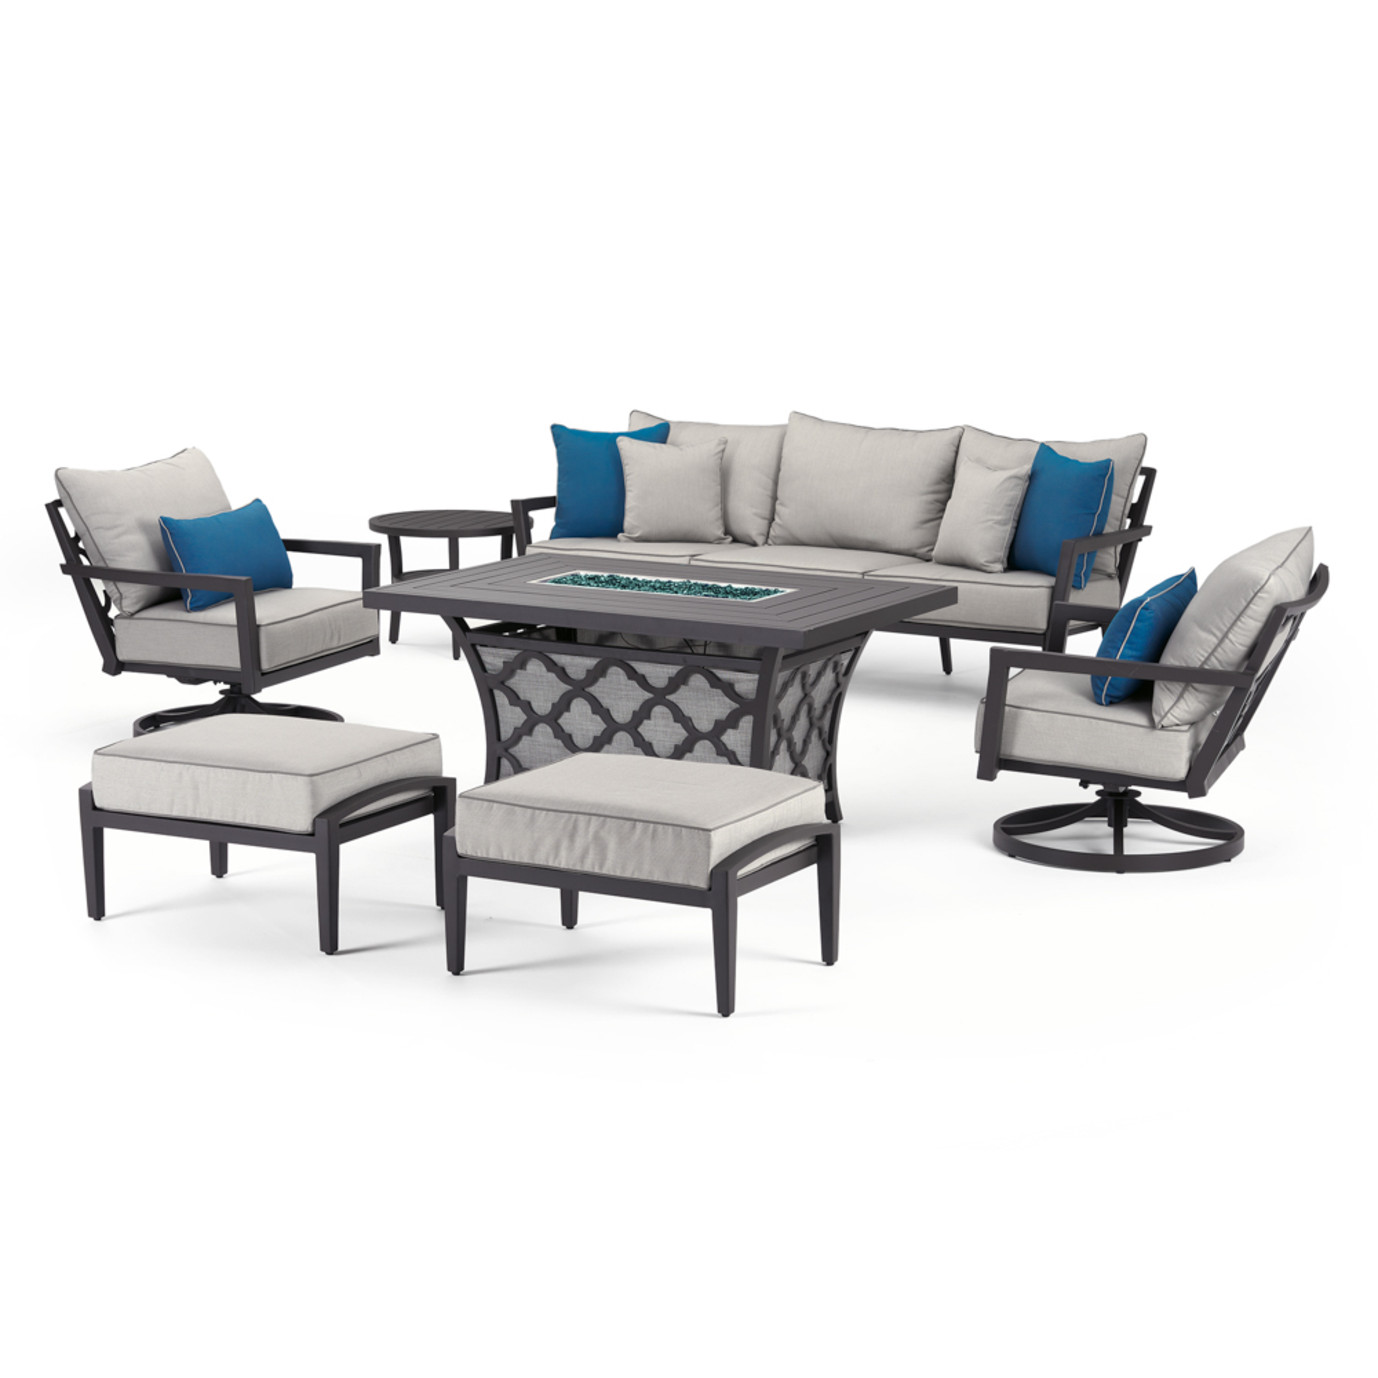 Venetia 7 Piece Motion Fire Seating Set